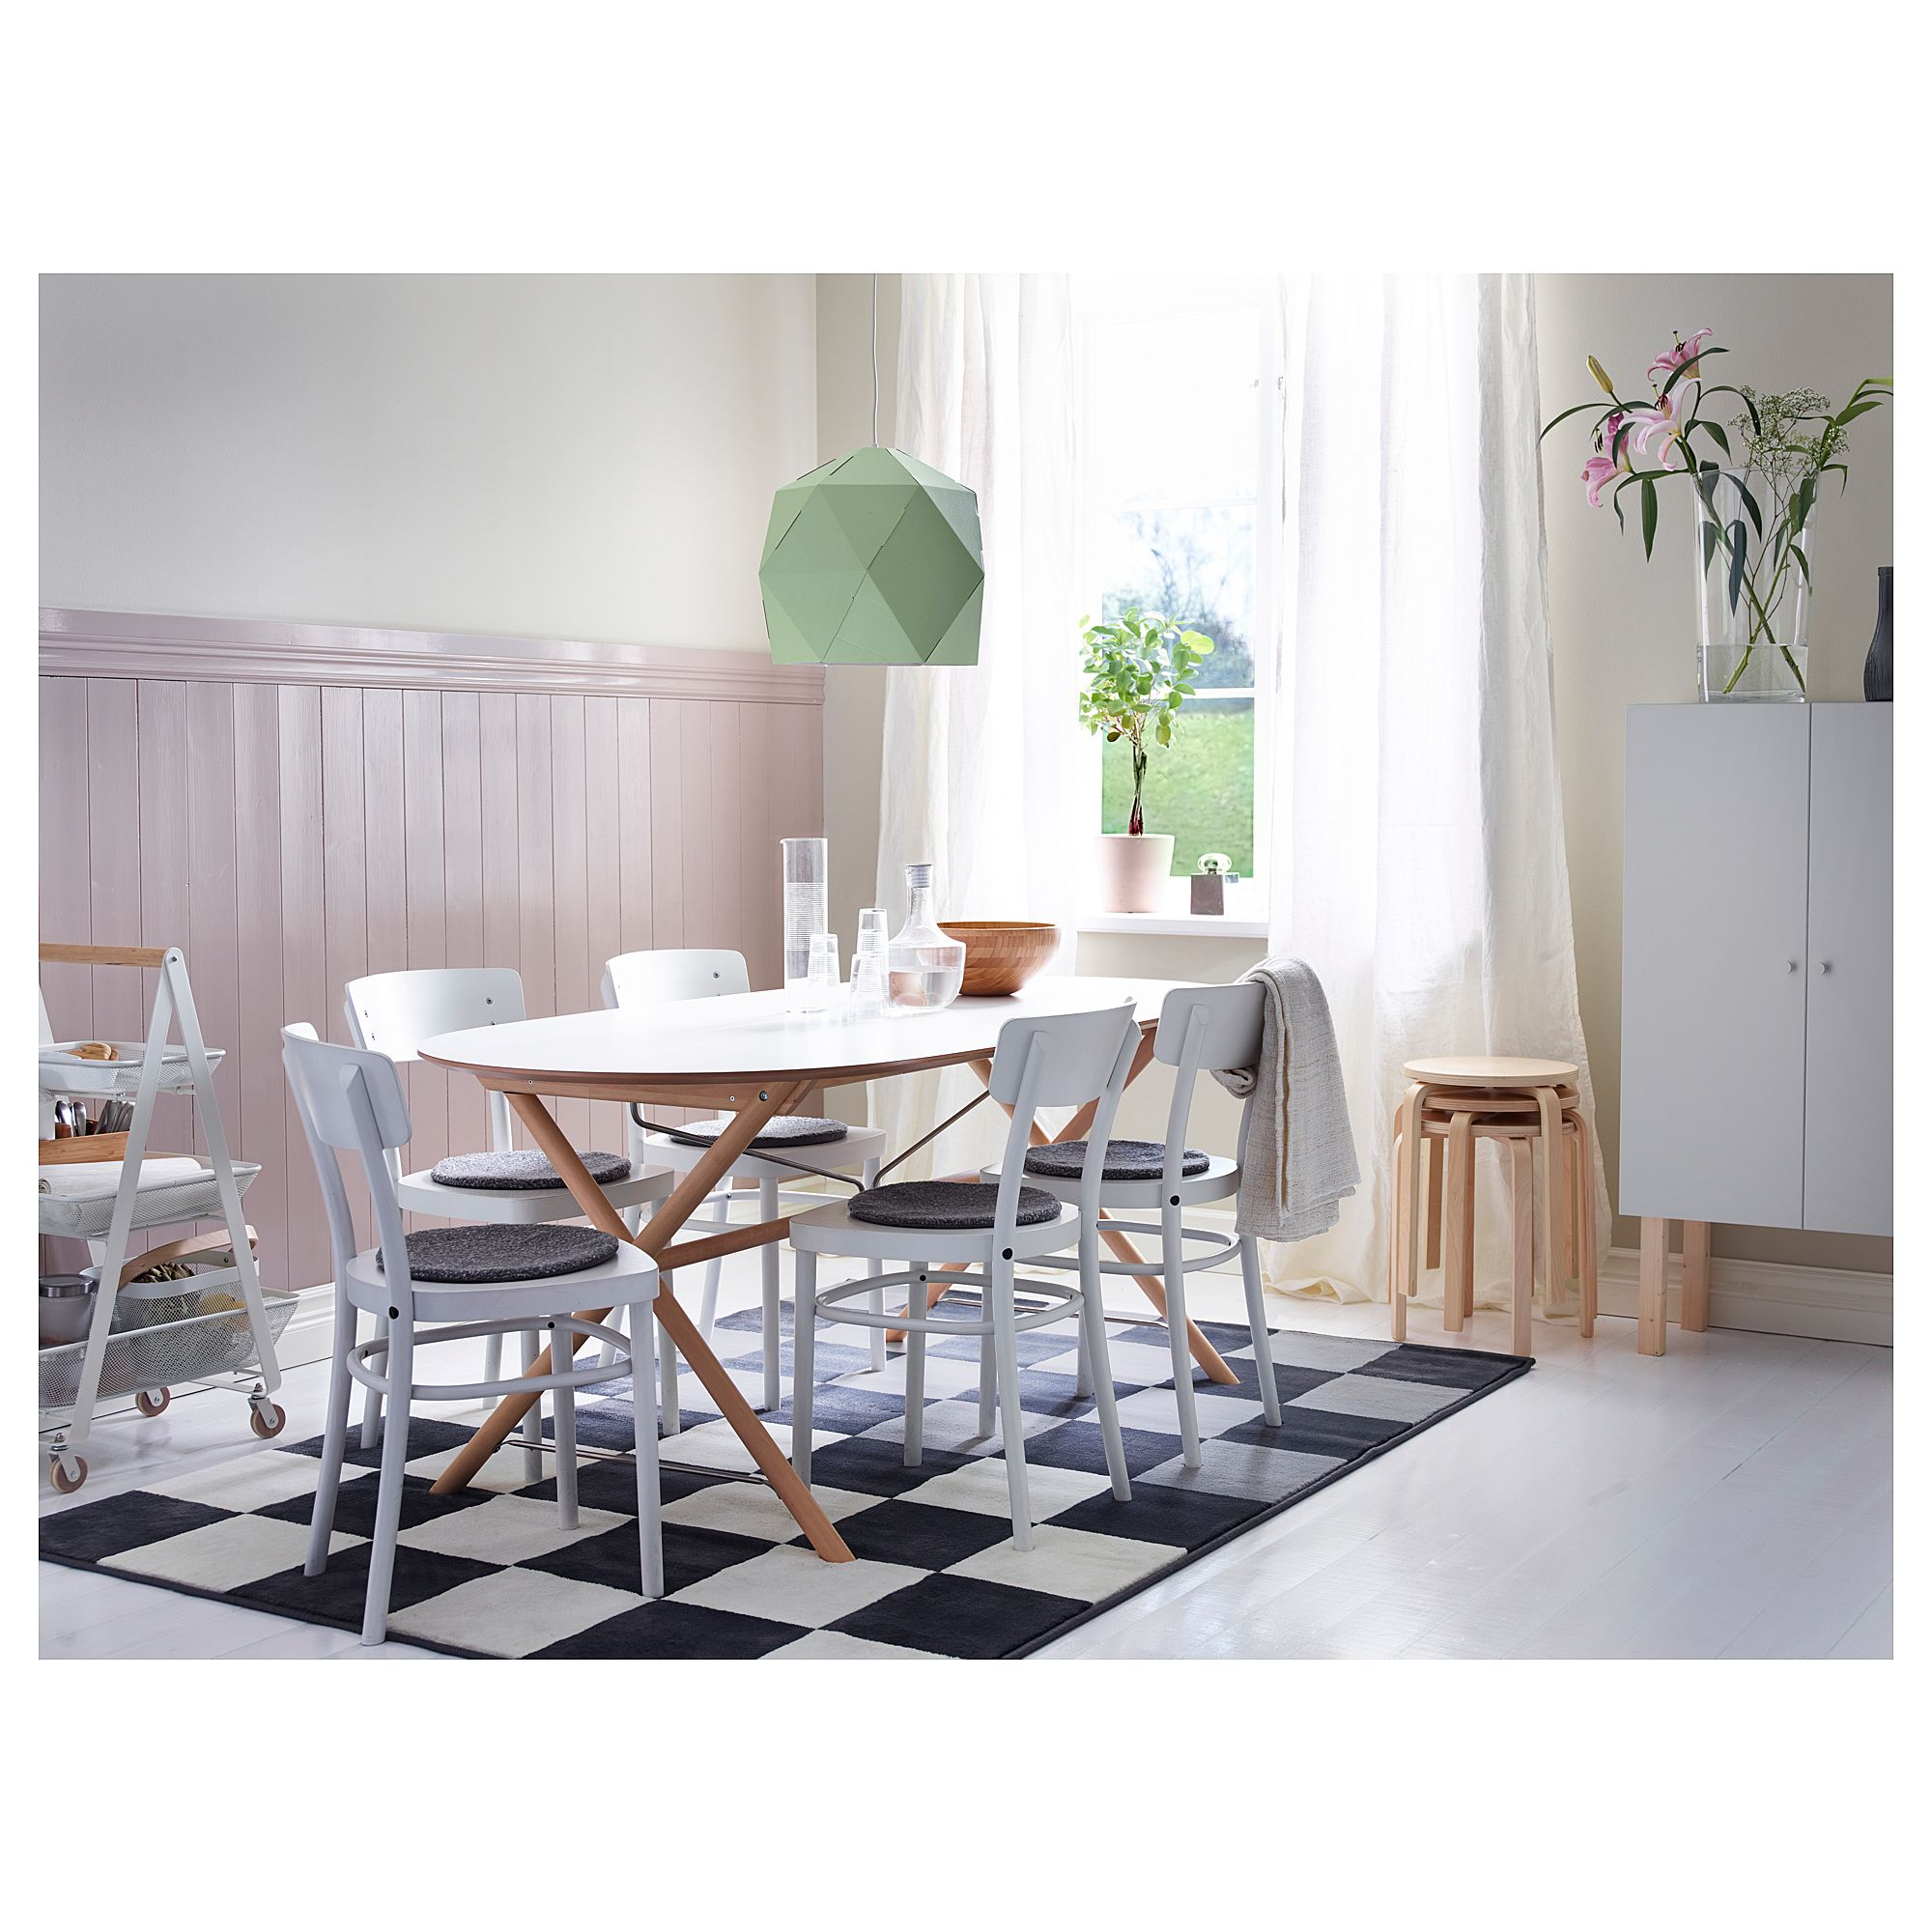 Ikea Idolf Chair White D For The Home Pinterest Dining